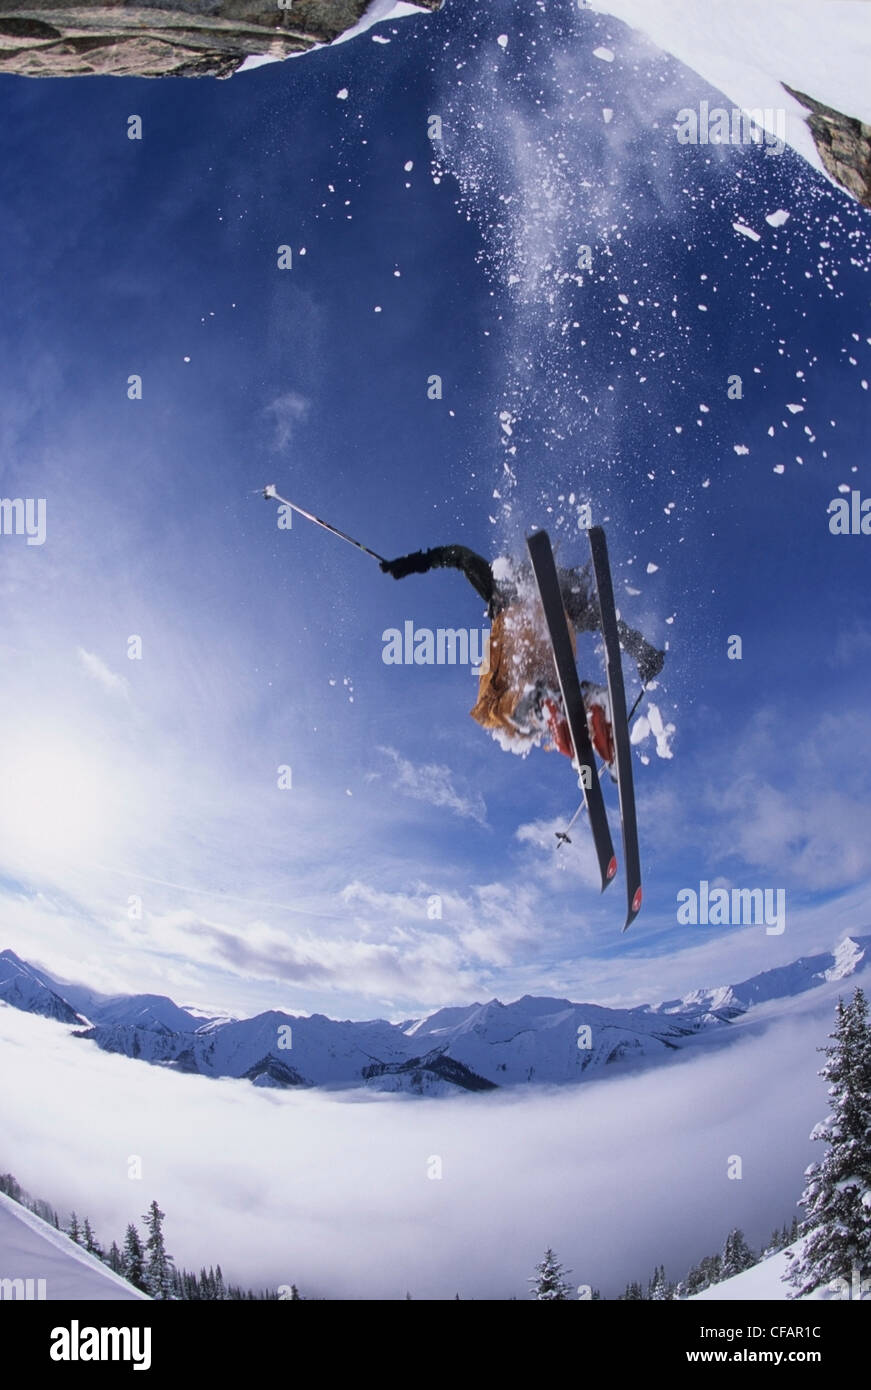 A skier catching some air after jumping a cliff in the backcountry of Kickinghorse Resort Area, Golden, British - Stock Image